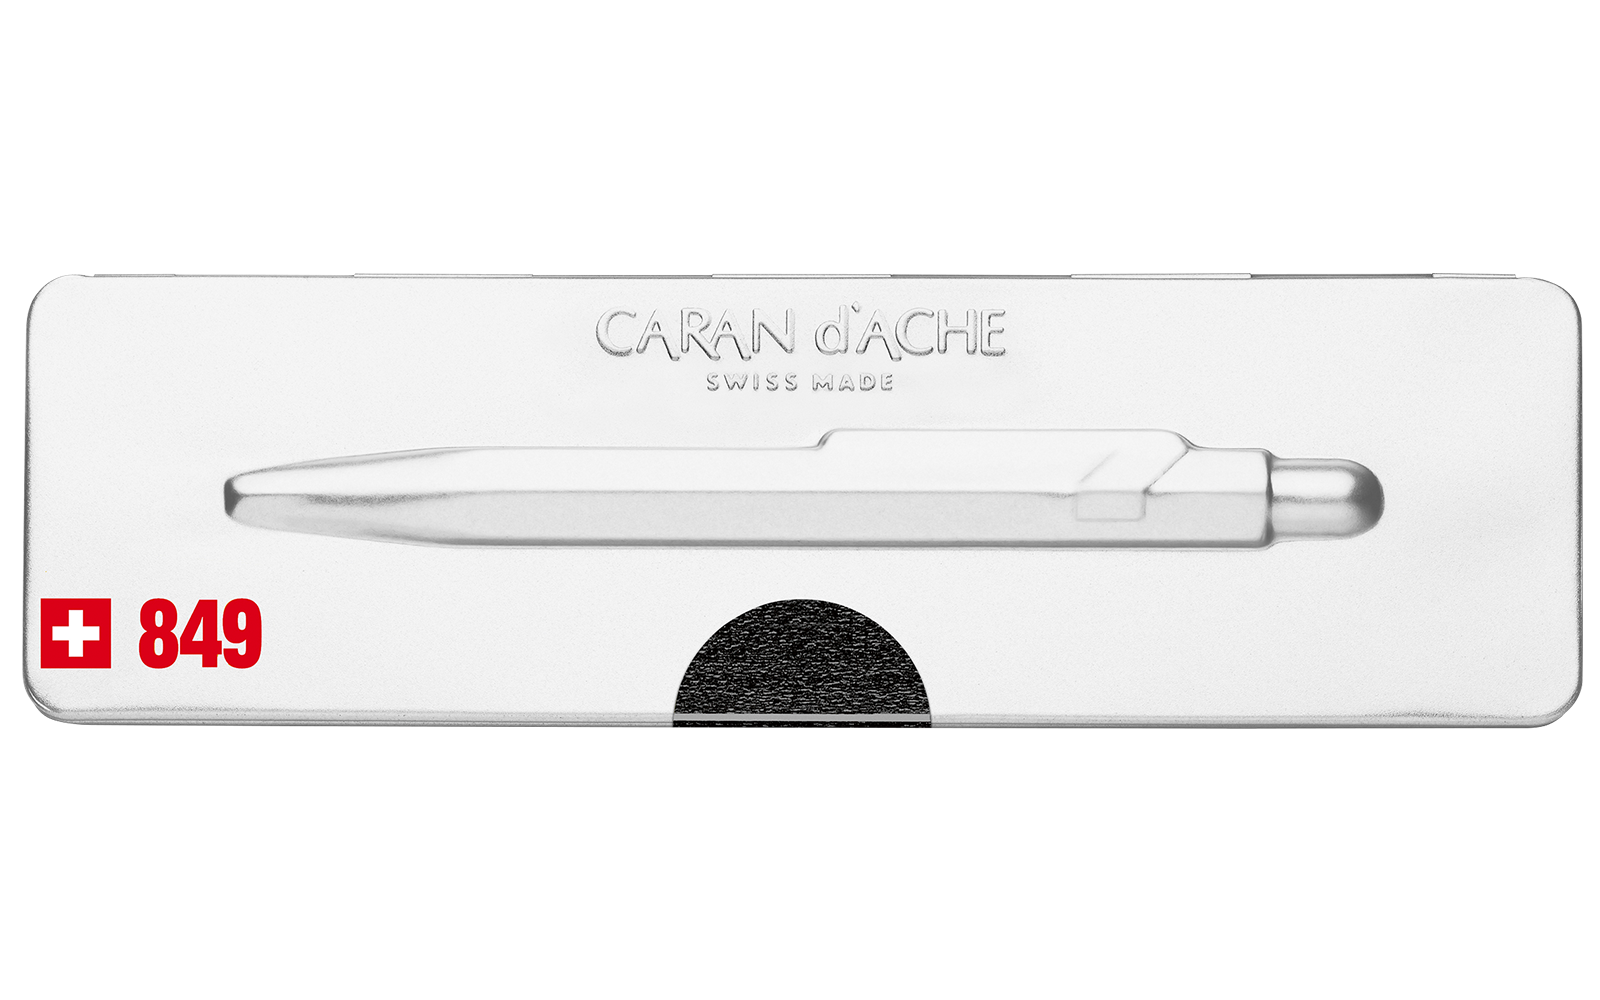 Carandache Office 849 Pop Line - Metallic Black, шариковая ручка, M